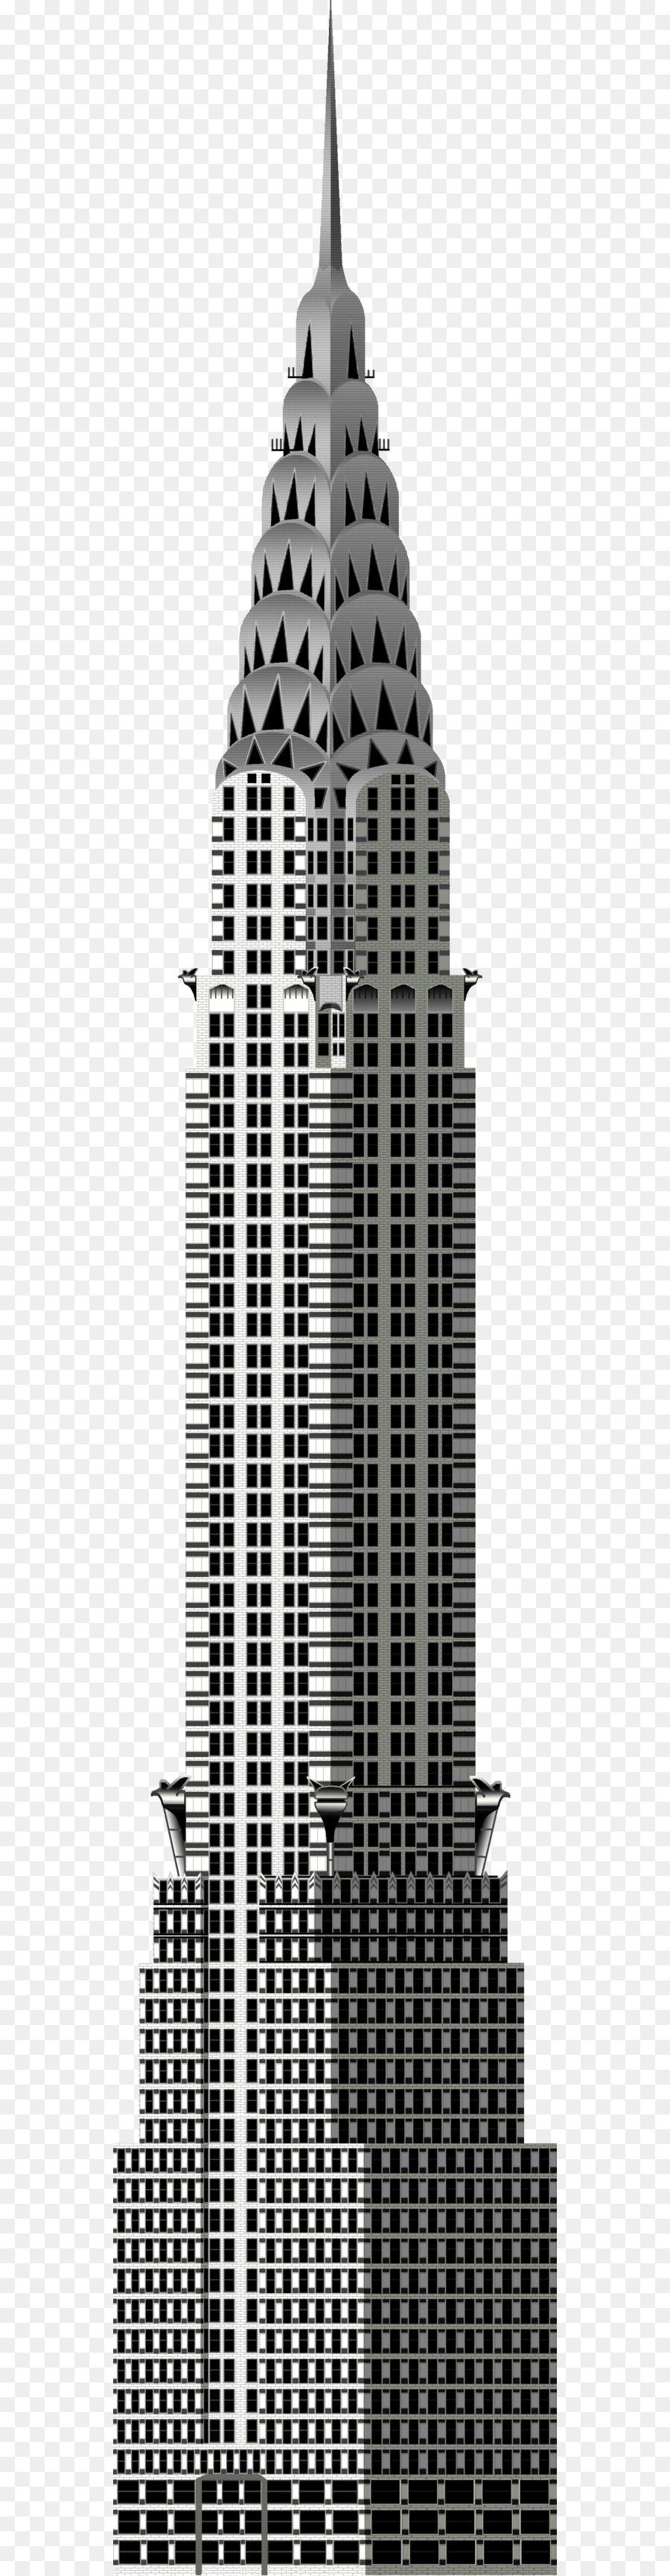 Skyscraper clipart on a white background library Building Background clipart - Building, Pattern, transparent ... library